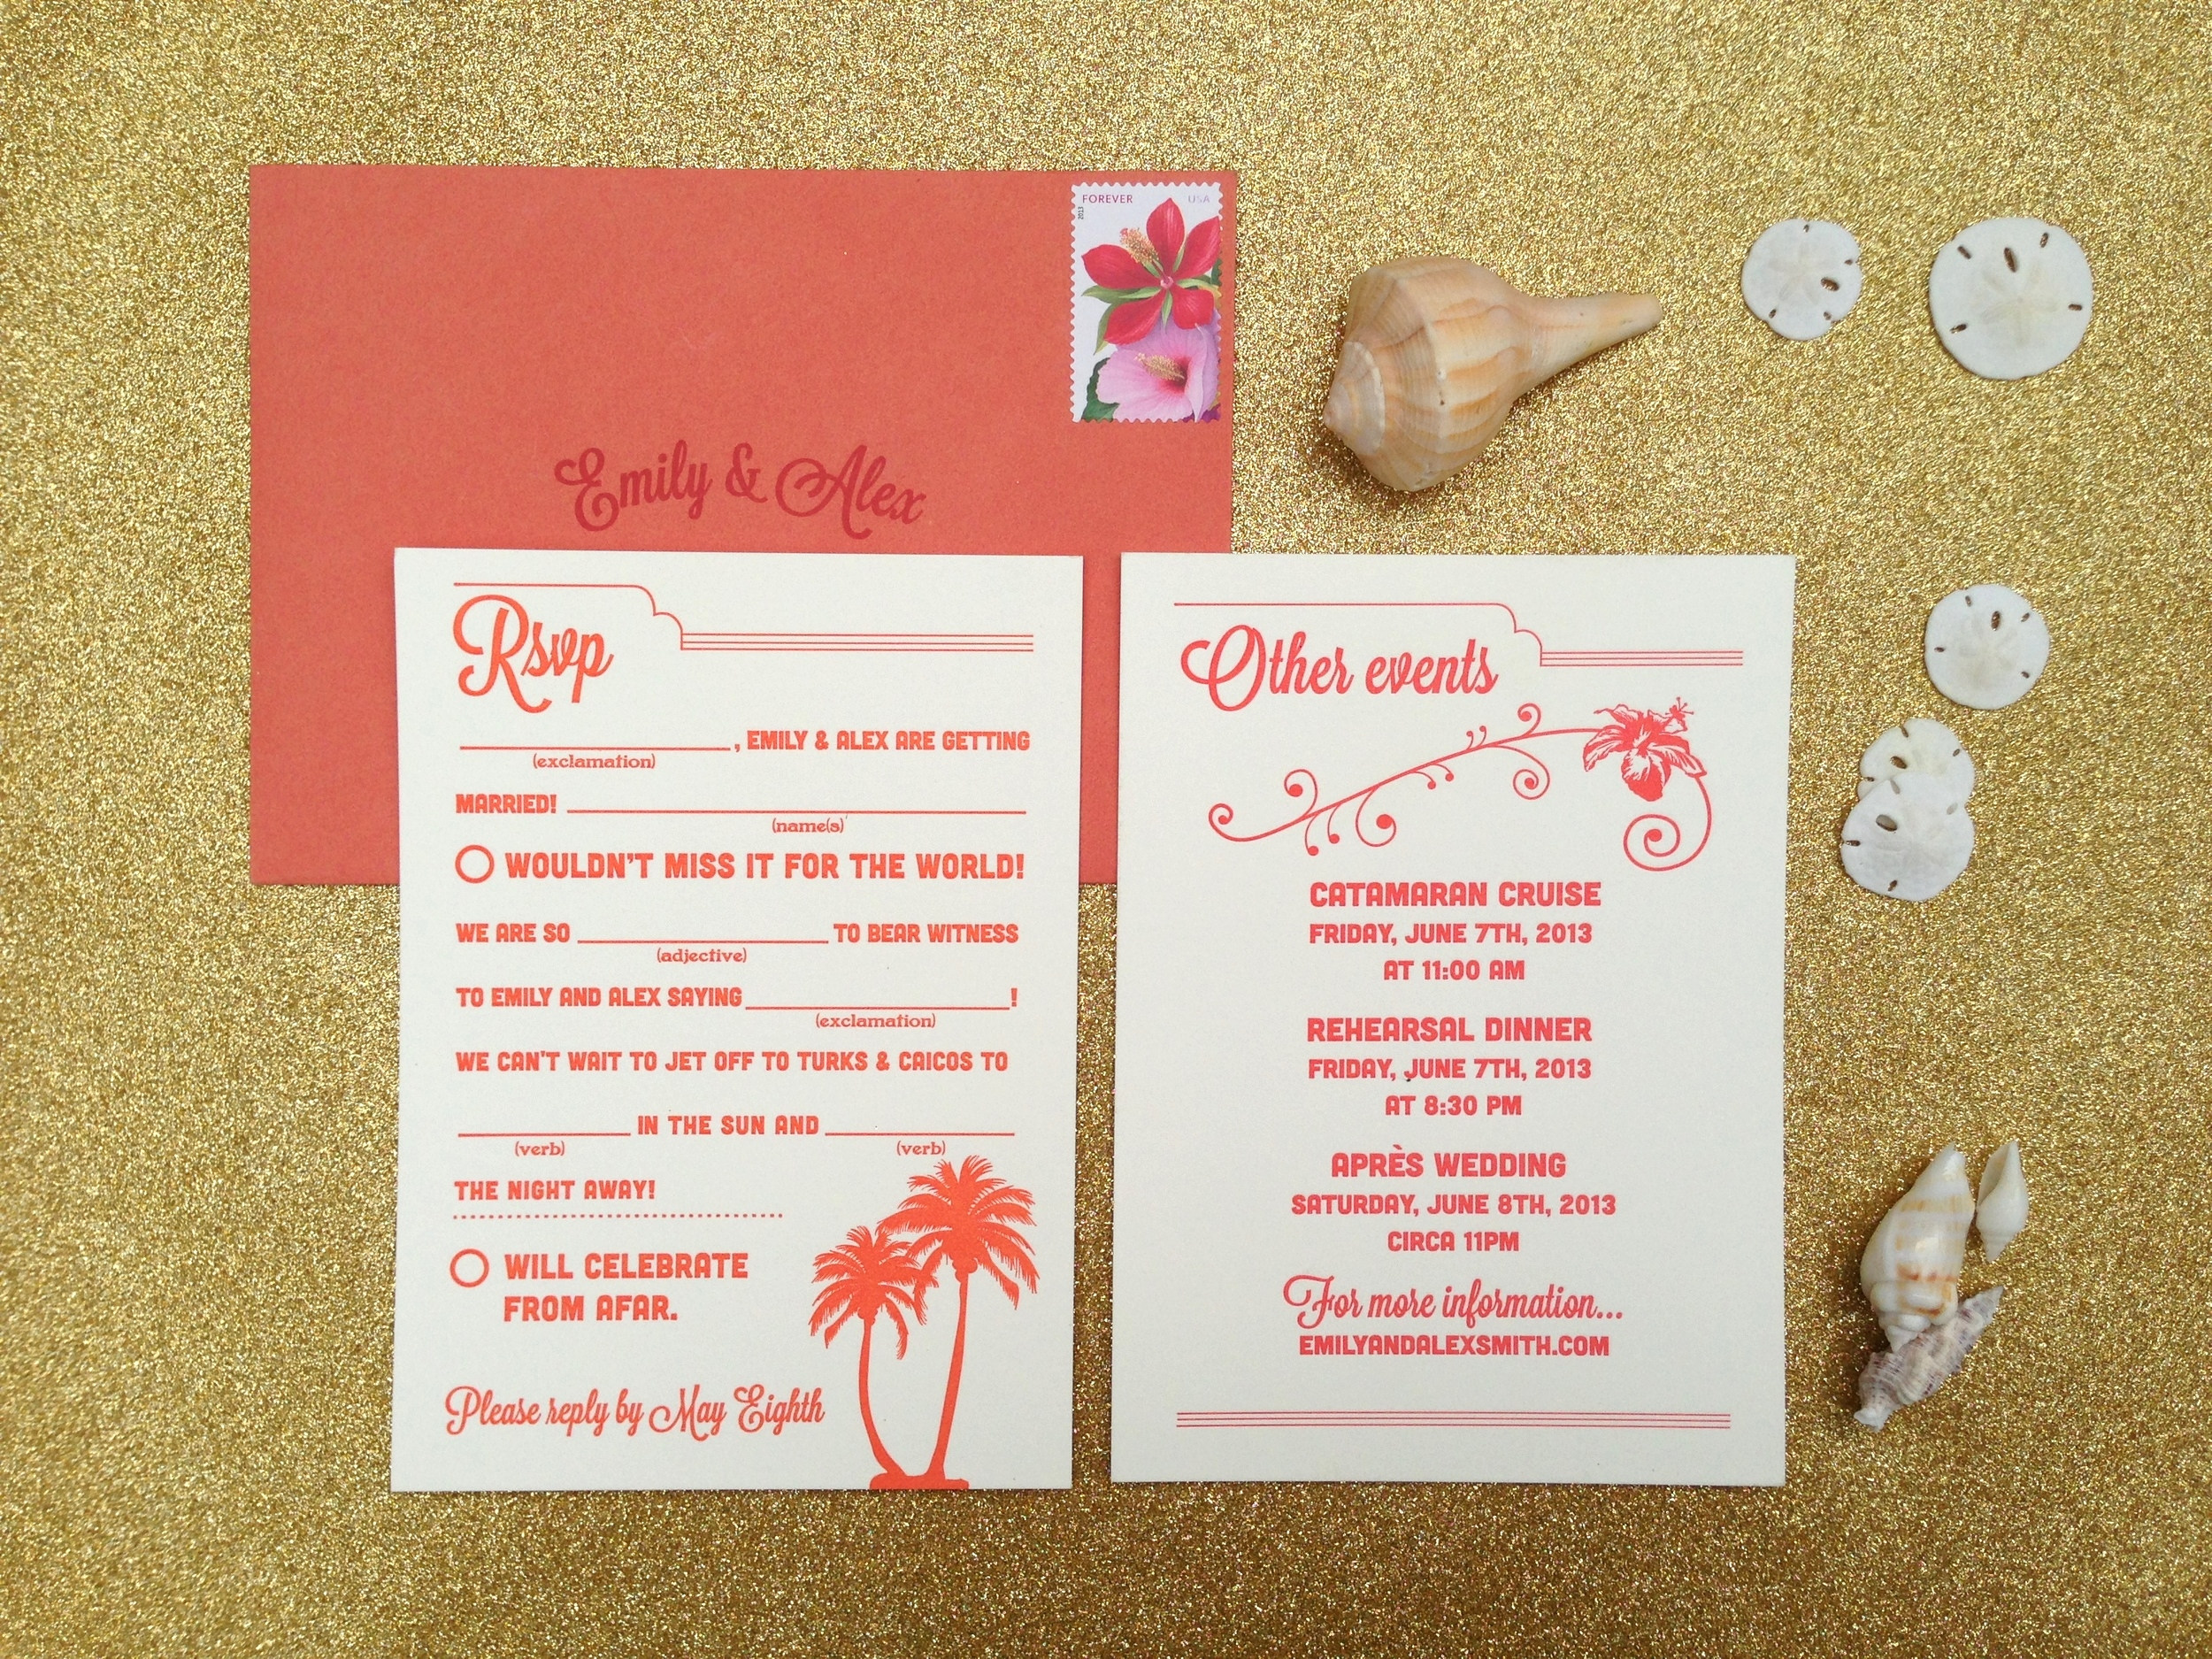 A mad lib reply card was designed in bright bright coral with an accompanying retro style events card in cherry red.